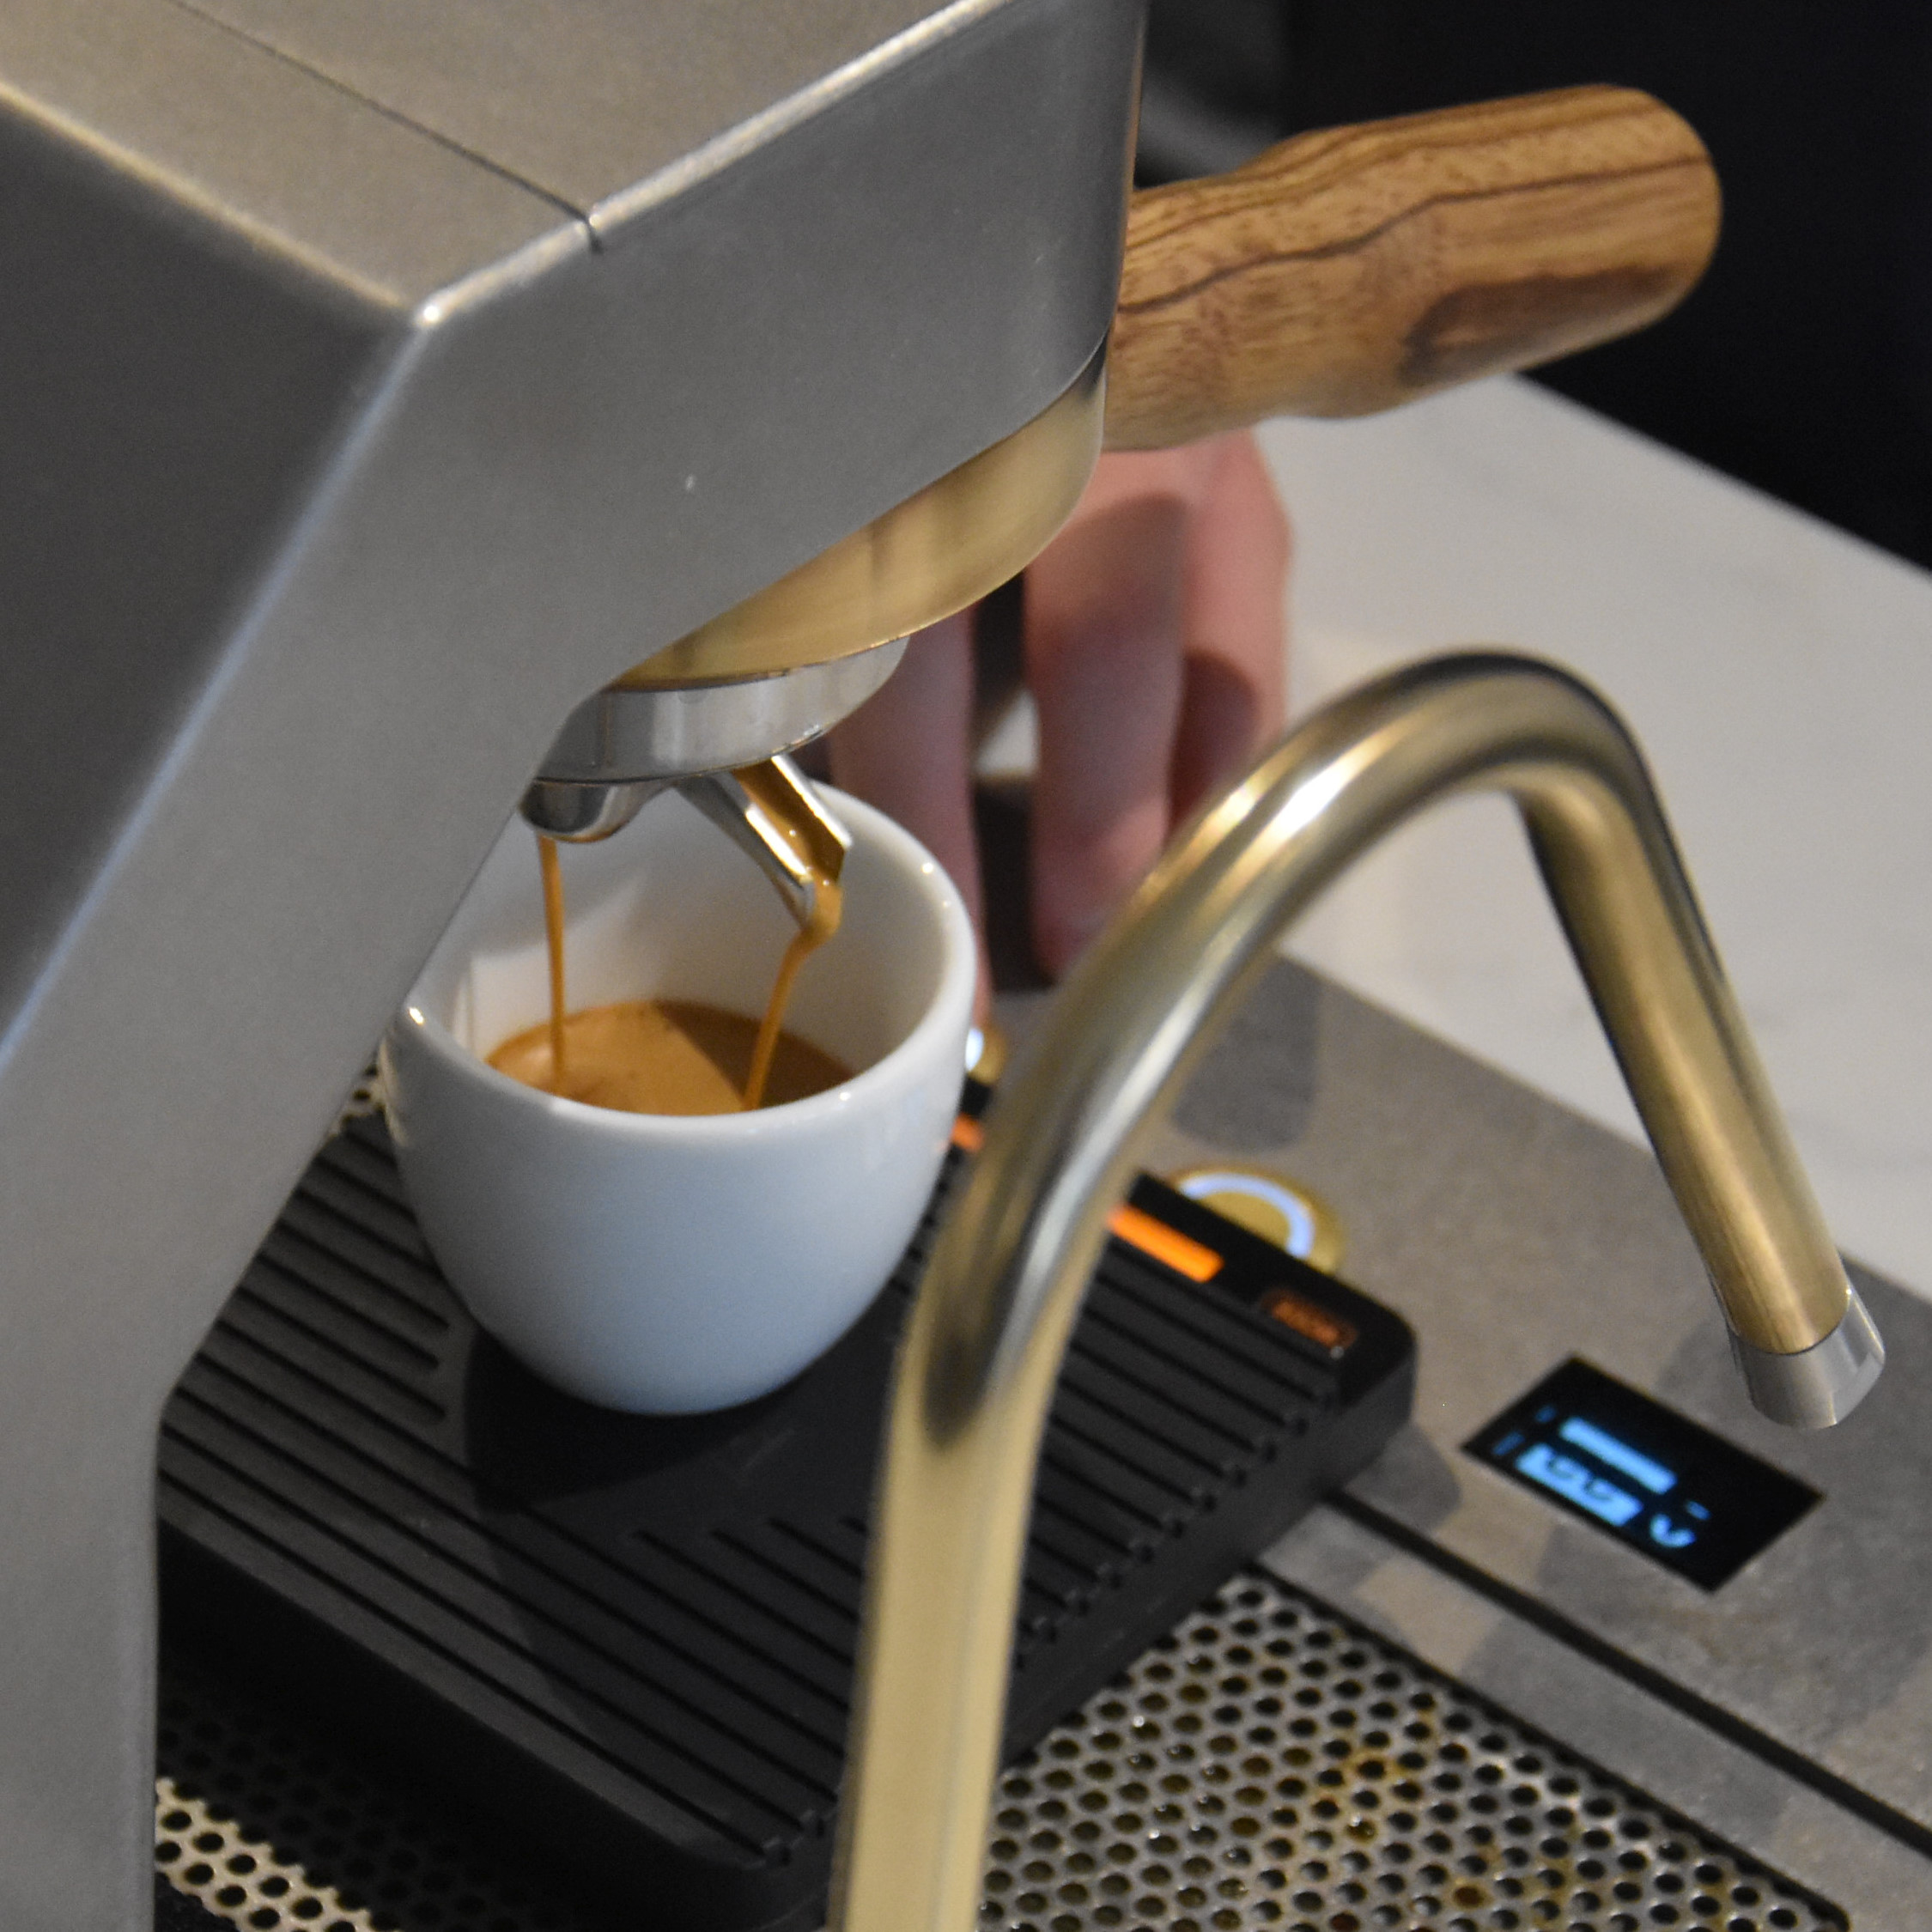 A Colombian single-origin espresso extracting on a Mavam espresso system at Ropes & Twines in Liverpool.